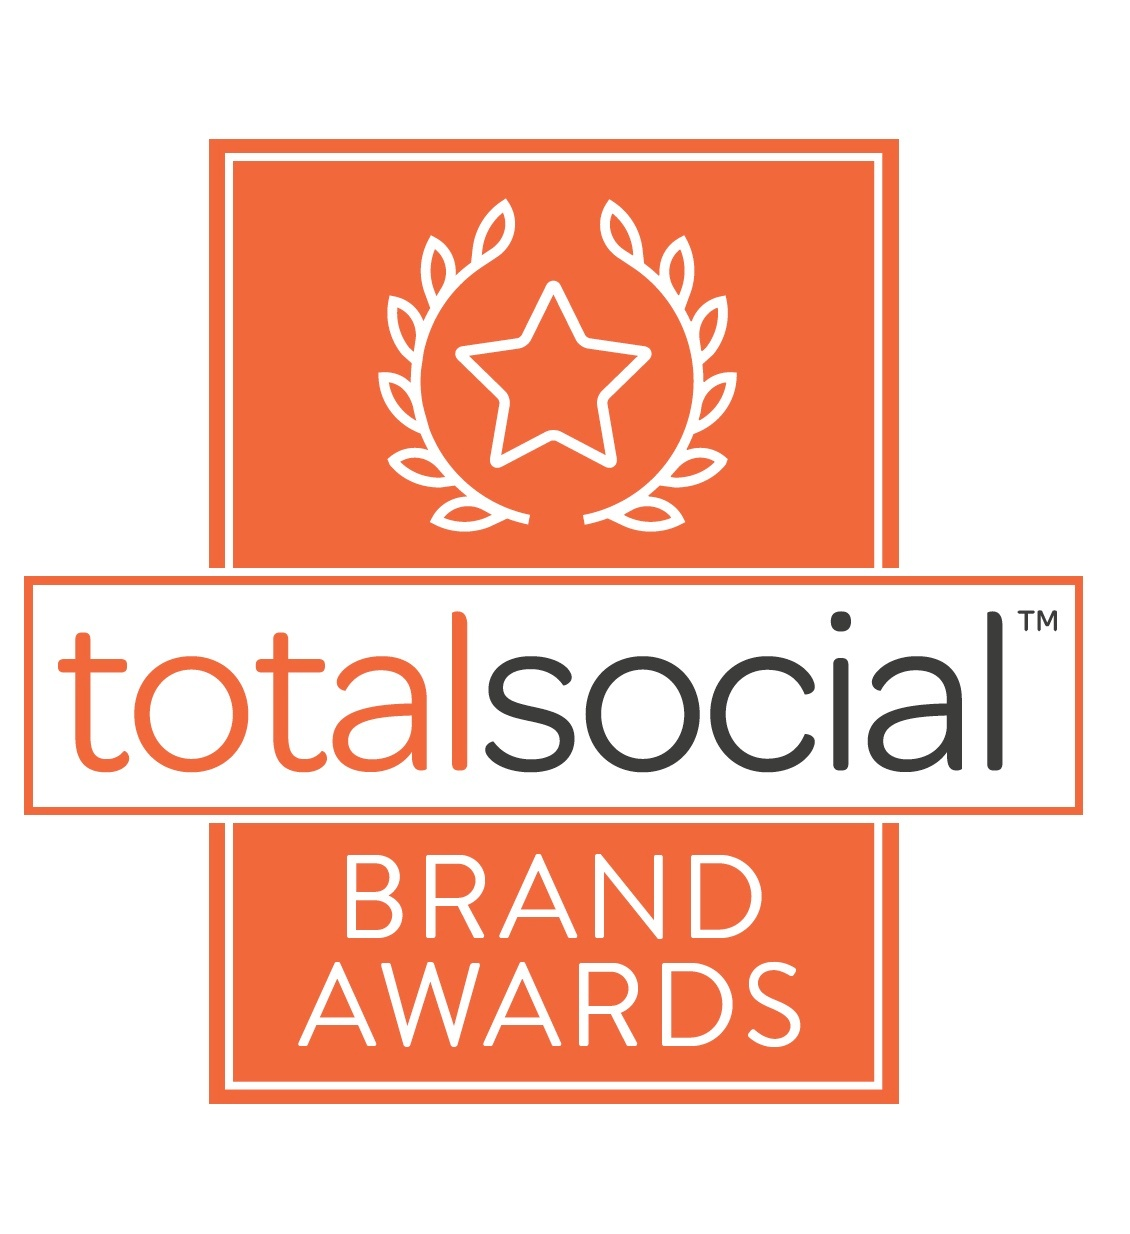 TotalSocial Brand Awards